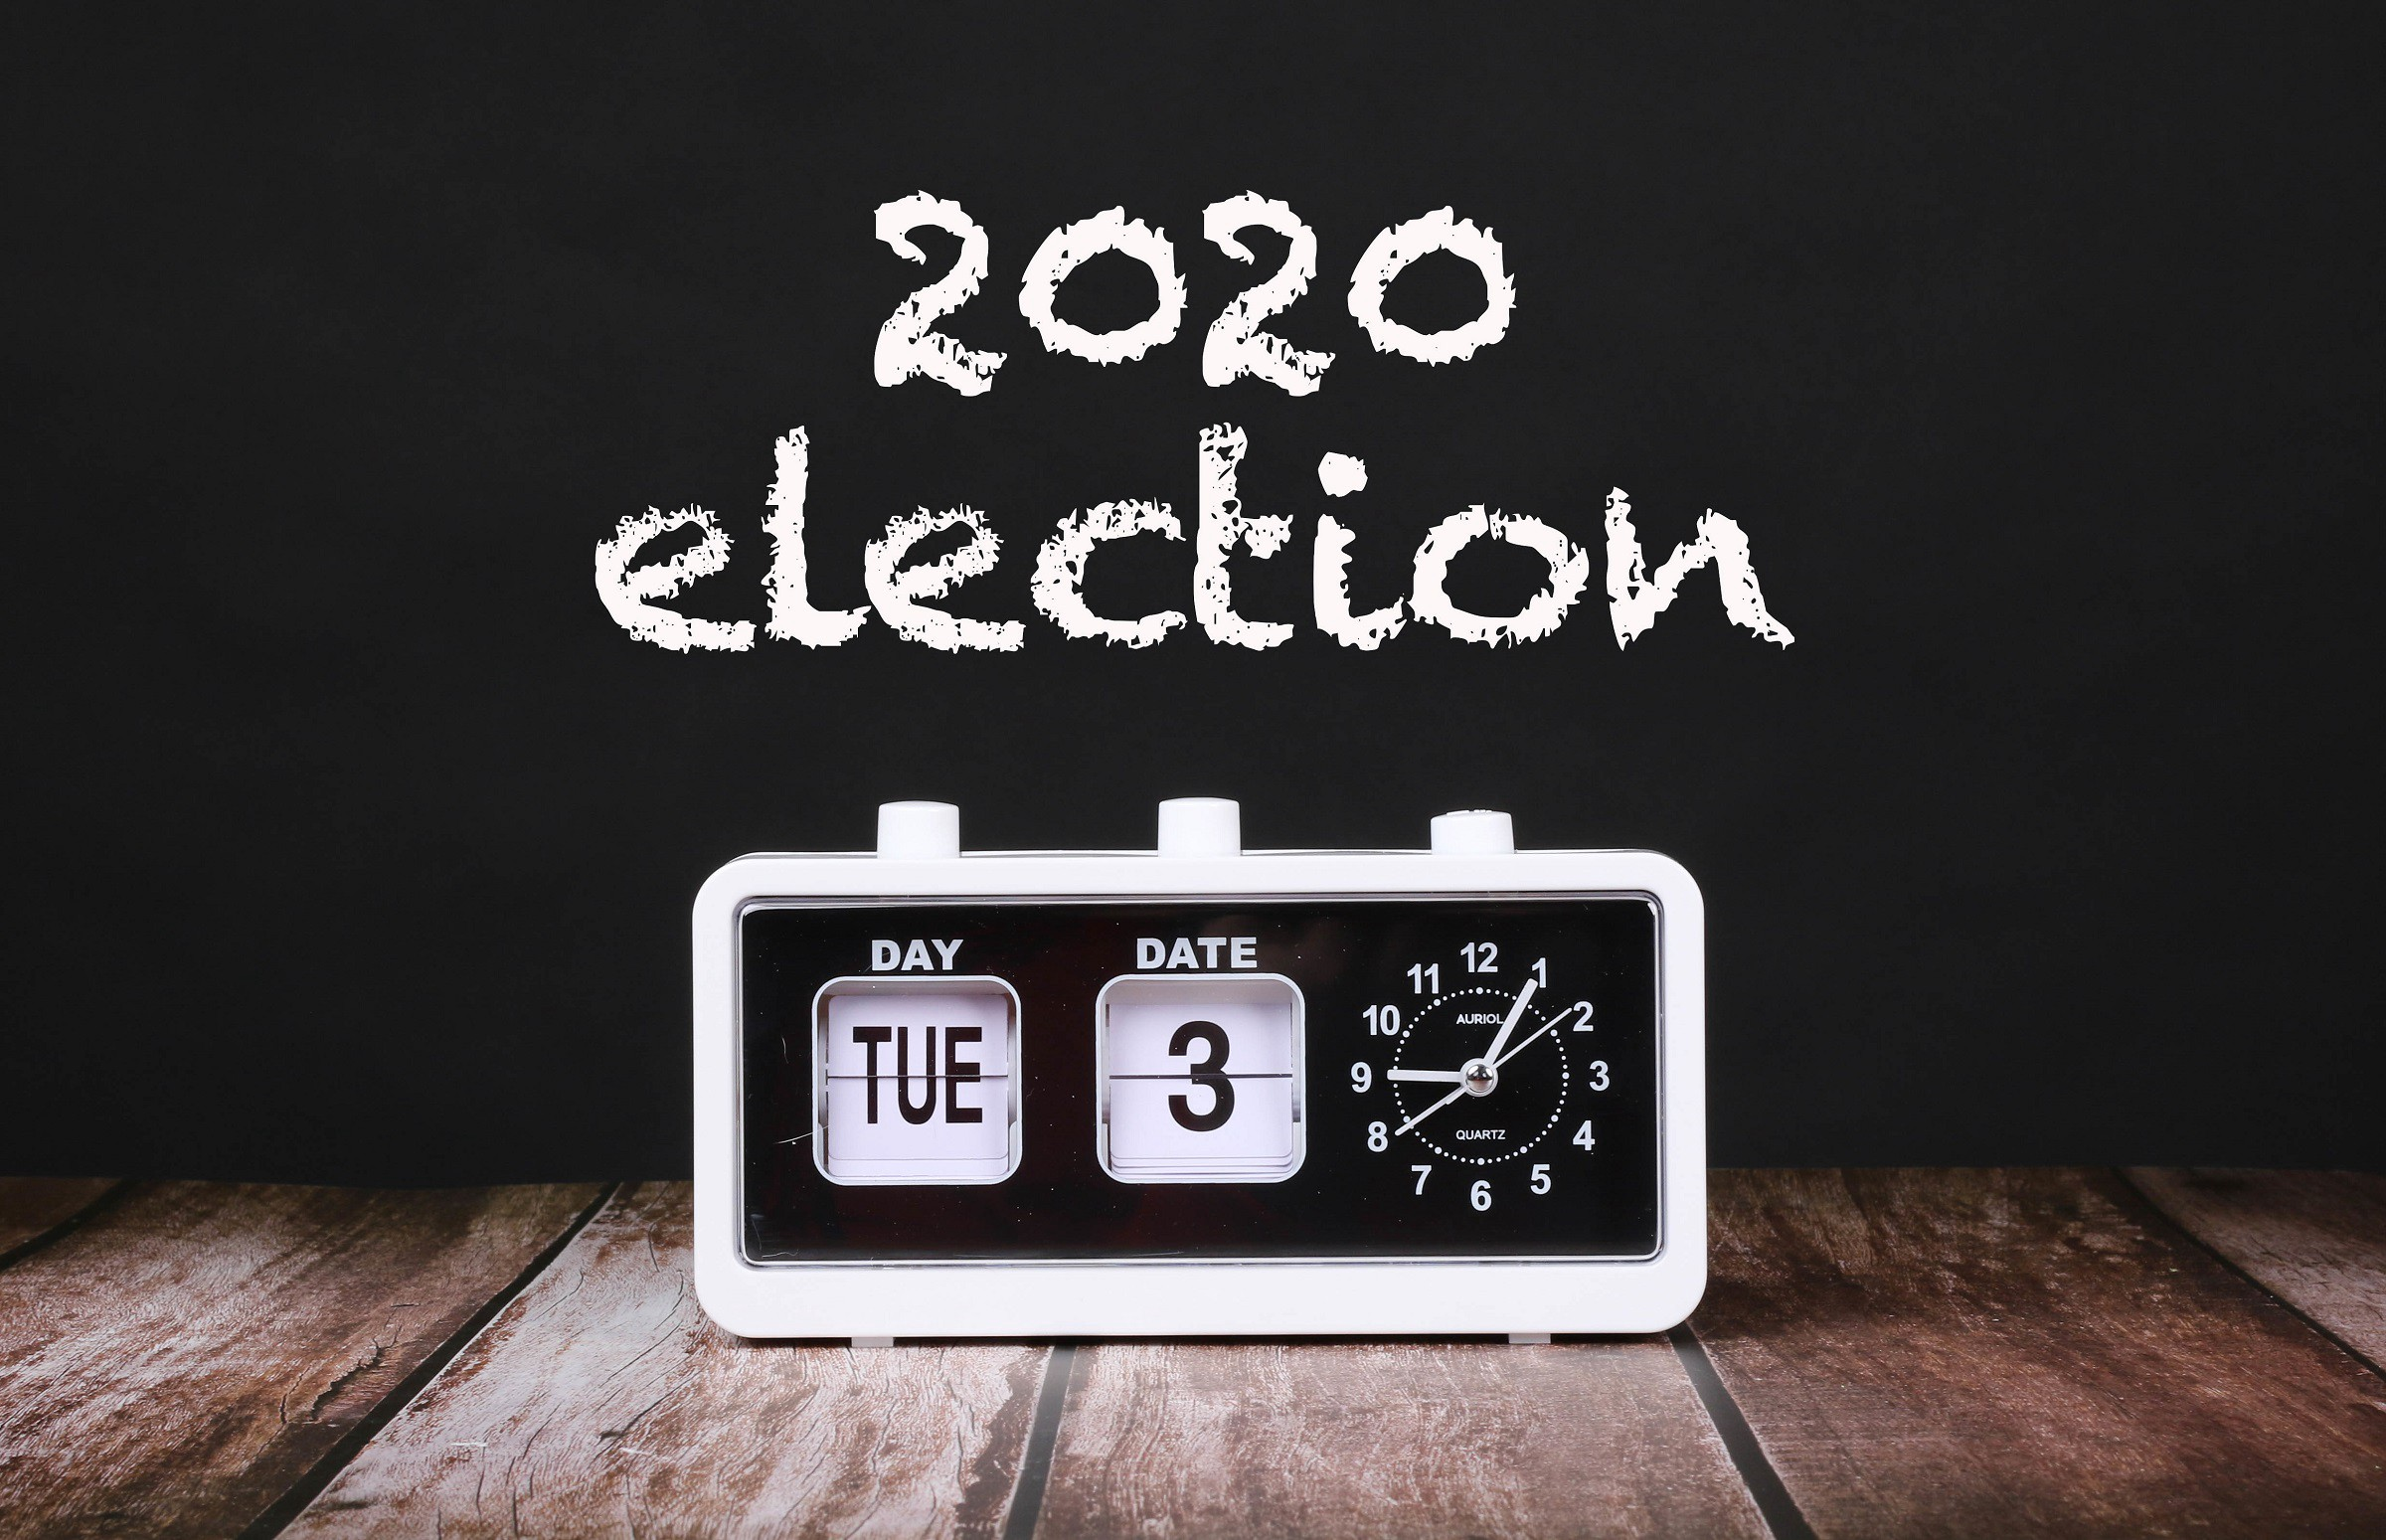 Black and white clock showing Tue 3 under 2020 election header